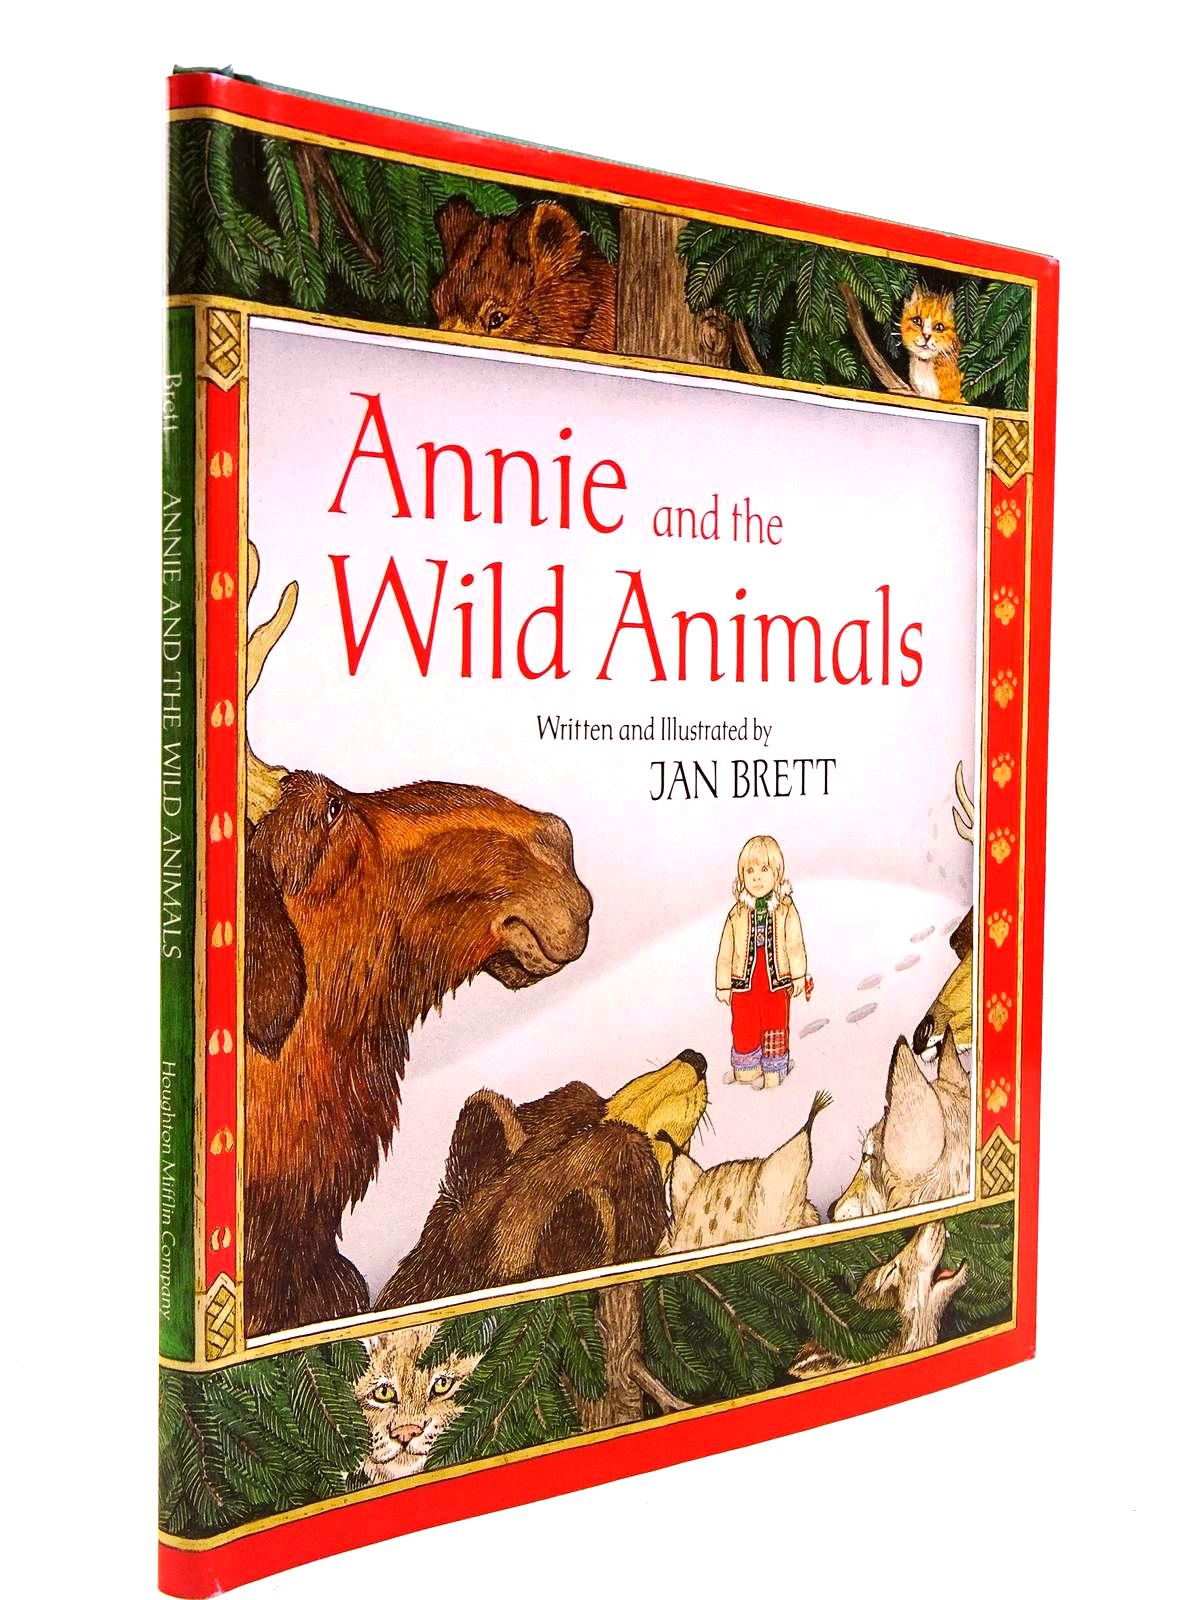 Photo of ANNIE AND THE WILD ANIMALS written by Brett, Jan illustrated by Brett, Jan published by Houghton Mifflin Company (STOCK CODE: 2130740)  for sale by Stella & Rose's Books